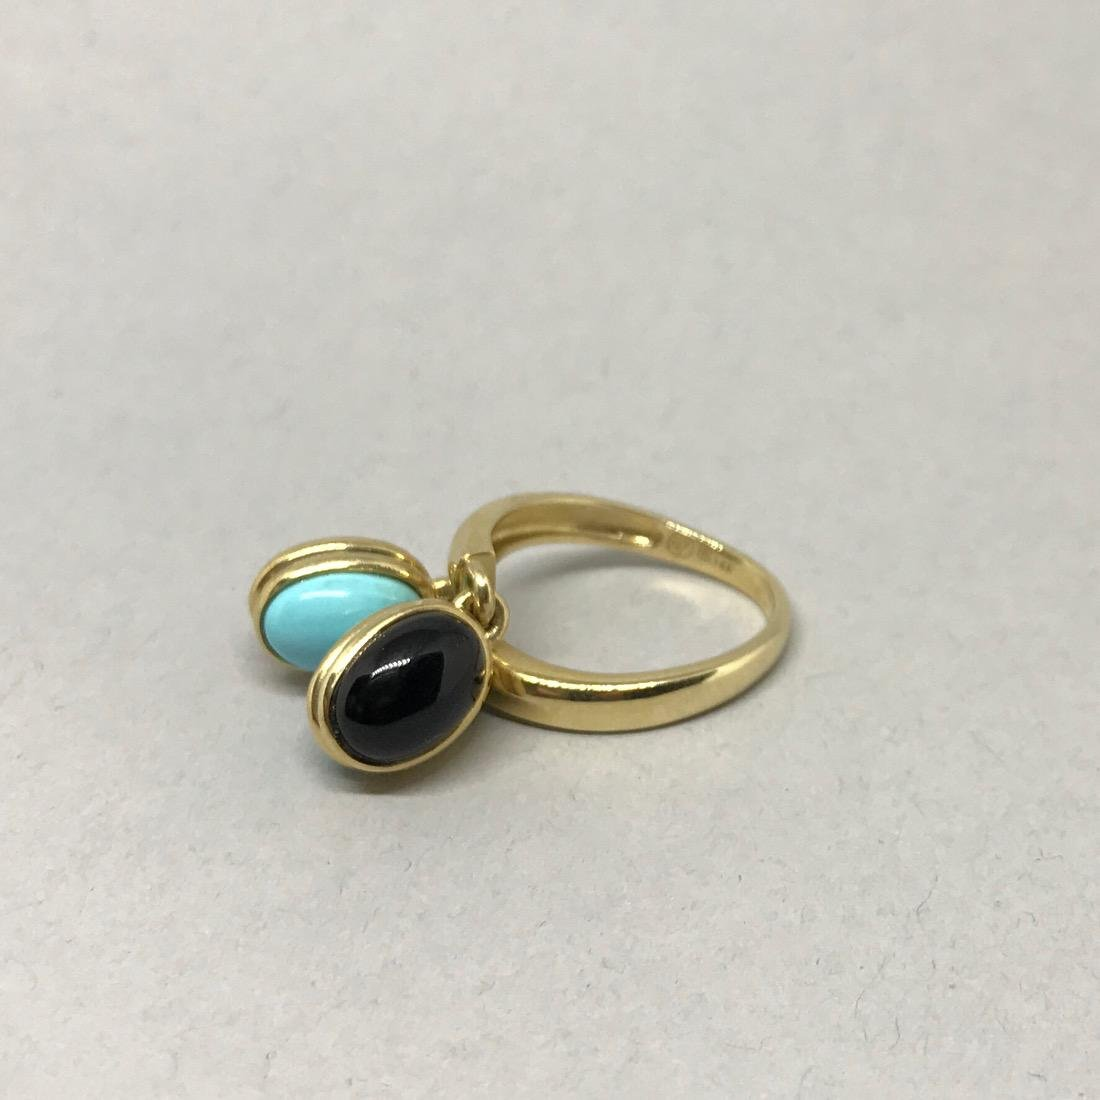 14Kt Gold Ring with Onyx & Turquoise